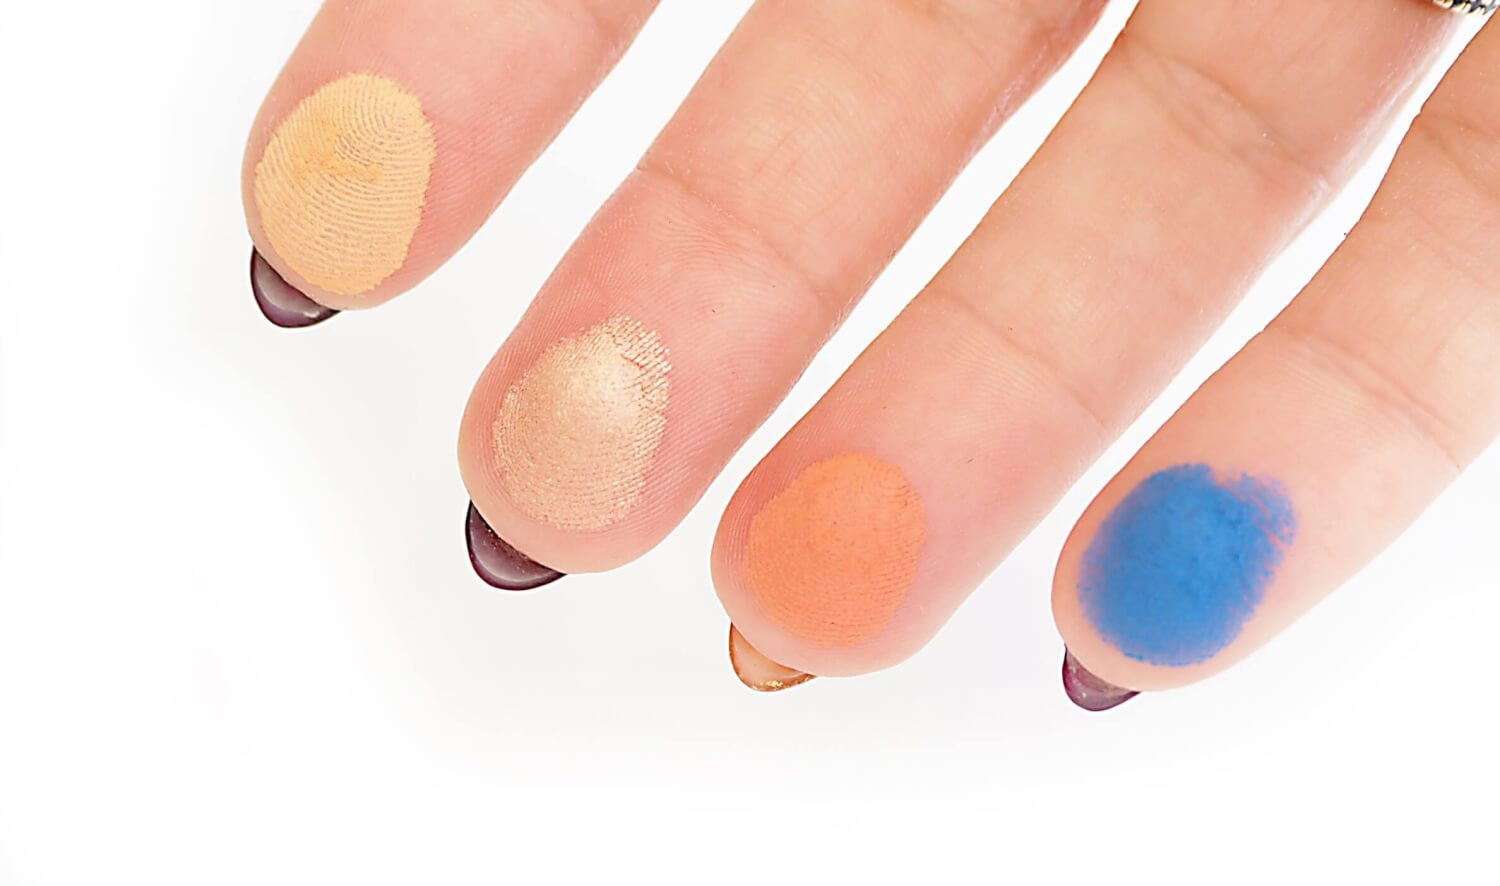 SWATCH THE ROYAL PEACH PALETTE